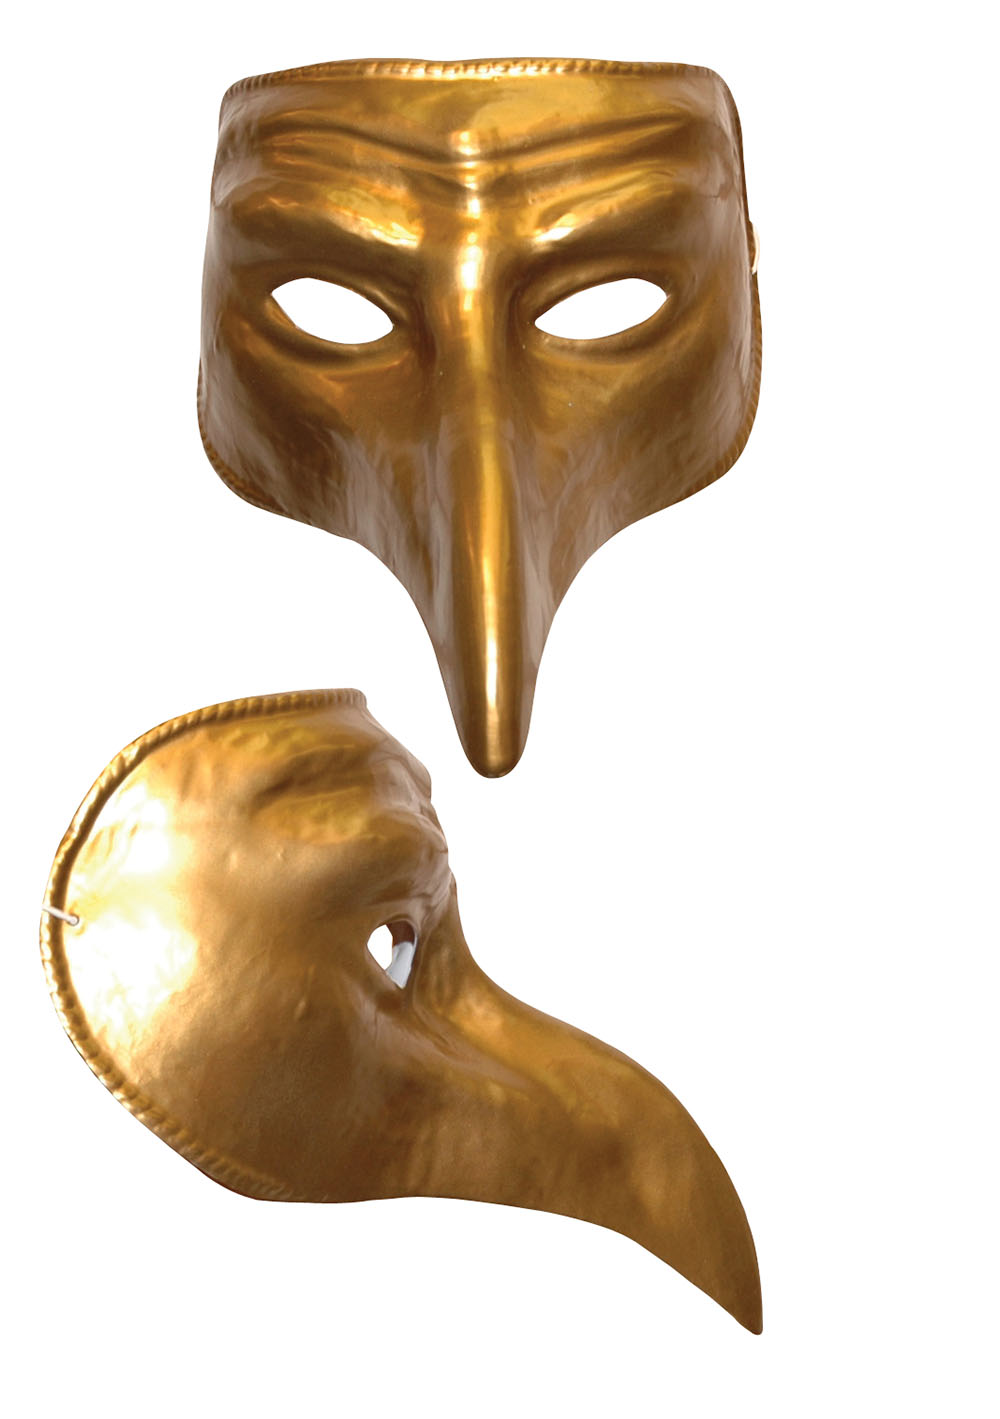 Gold Comedy mask.